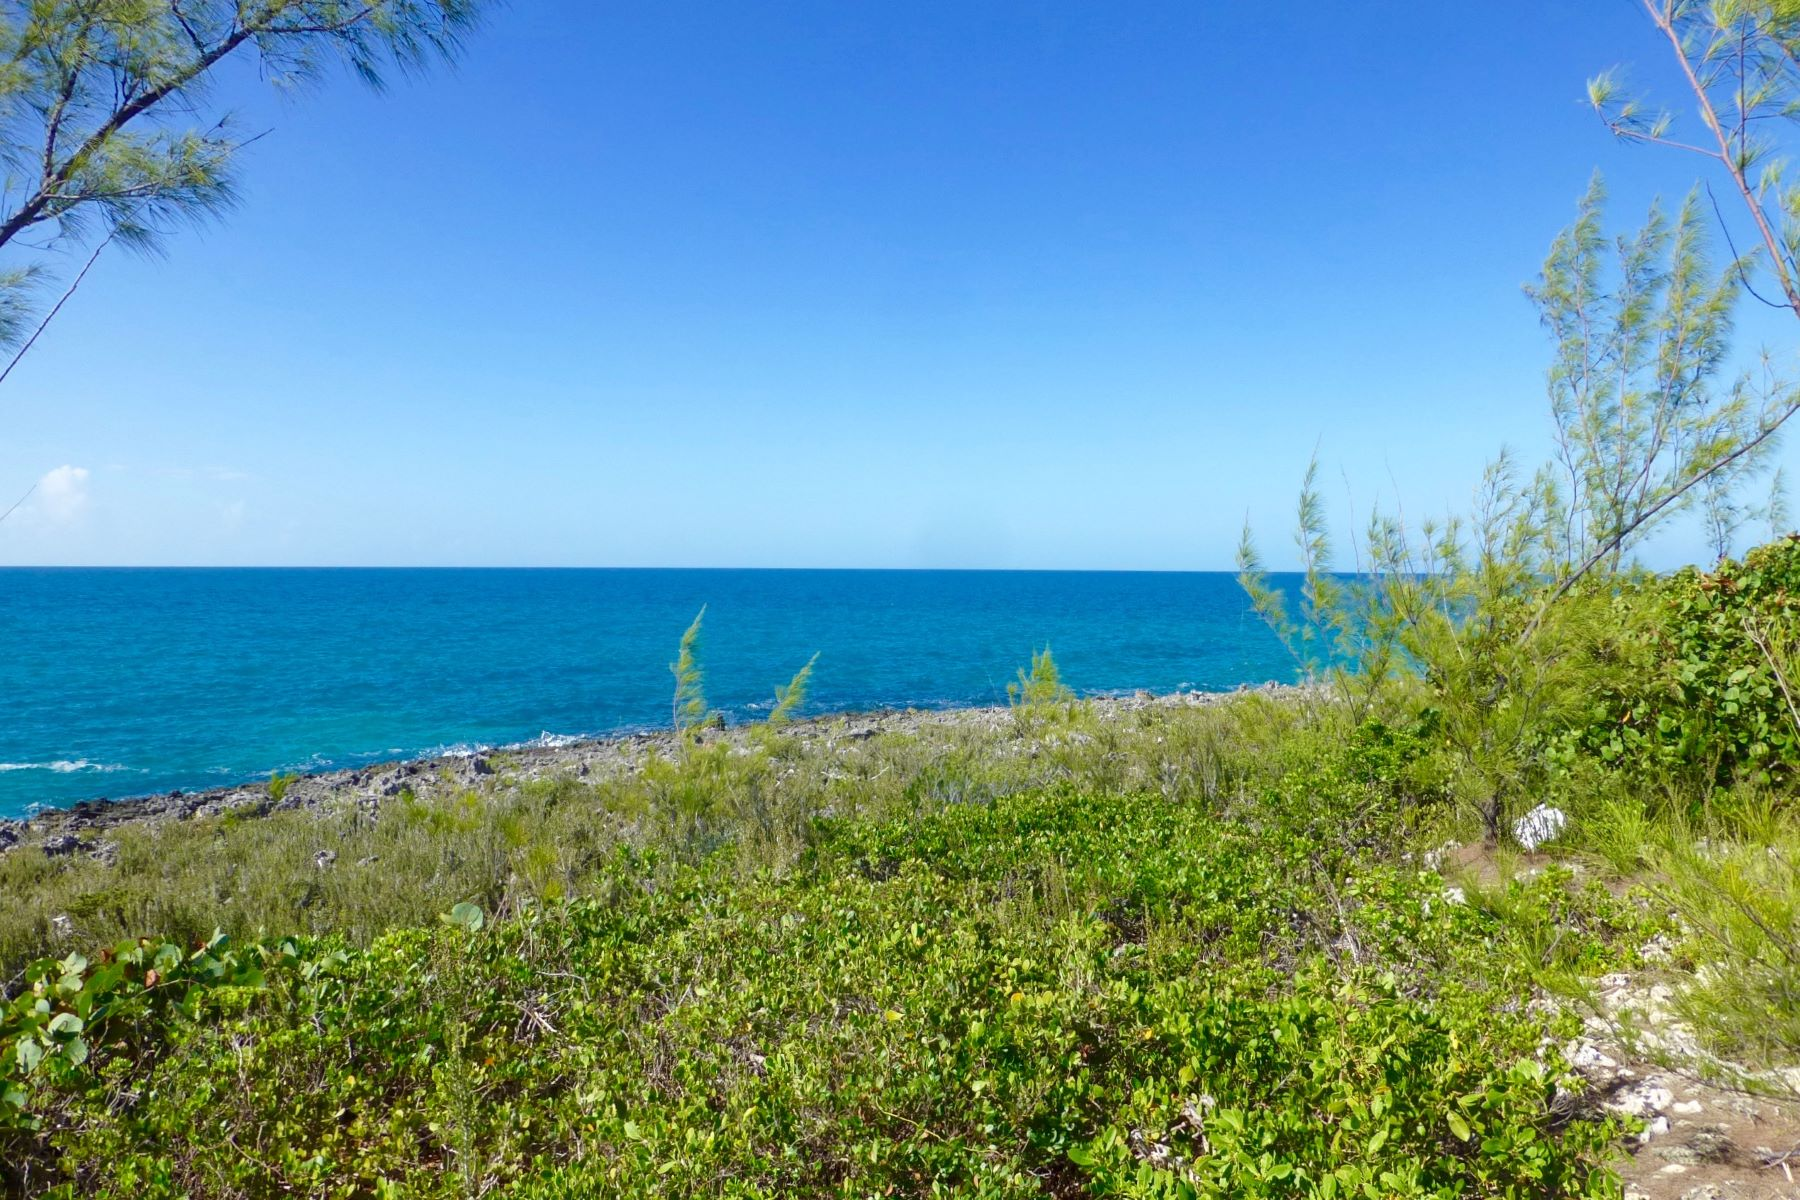 Terreno por un Venta en Desired Waterfront Property in Rainbow Bay Rainbow Bay, Eleuthera Bahamas